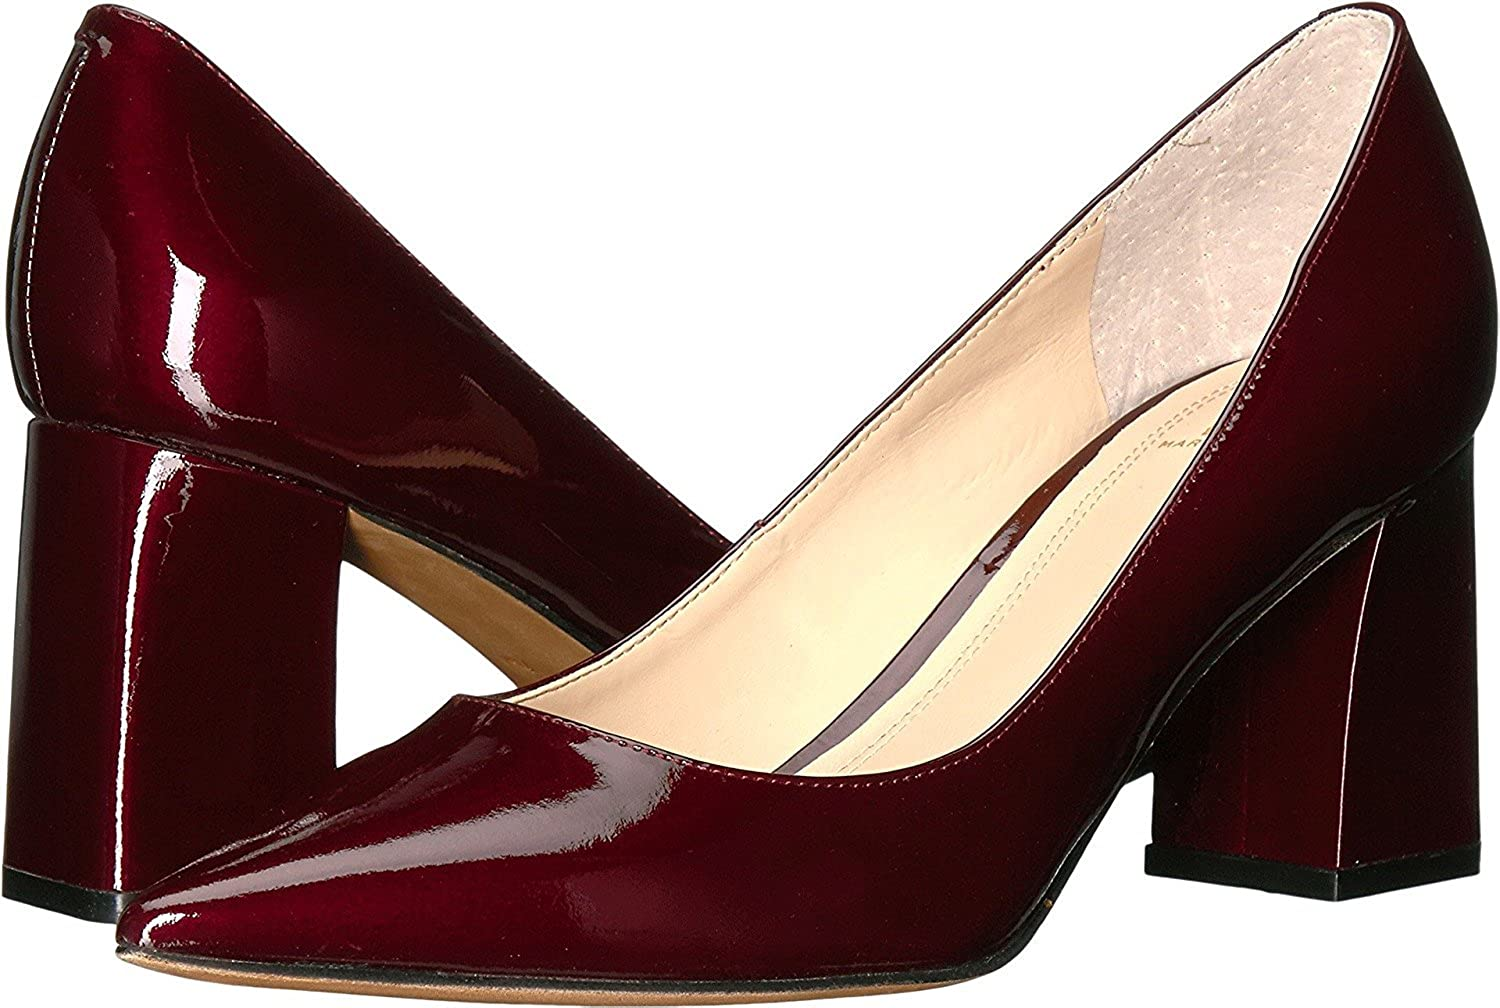 Marc Fisher Womens Zala Pointed Toe Classic Pumps, Red, Size 9.0 B01N9WFWK6 Parent